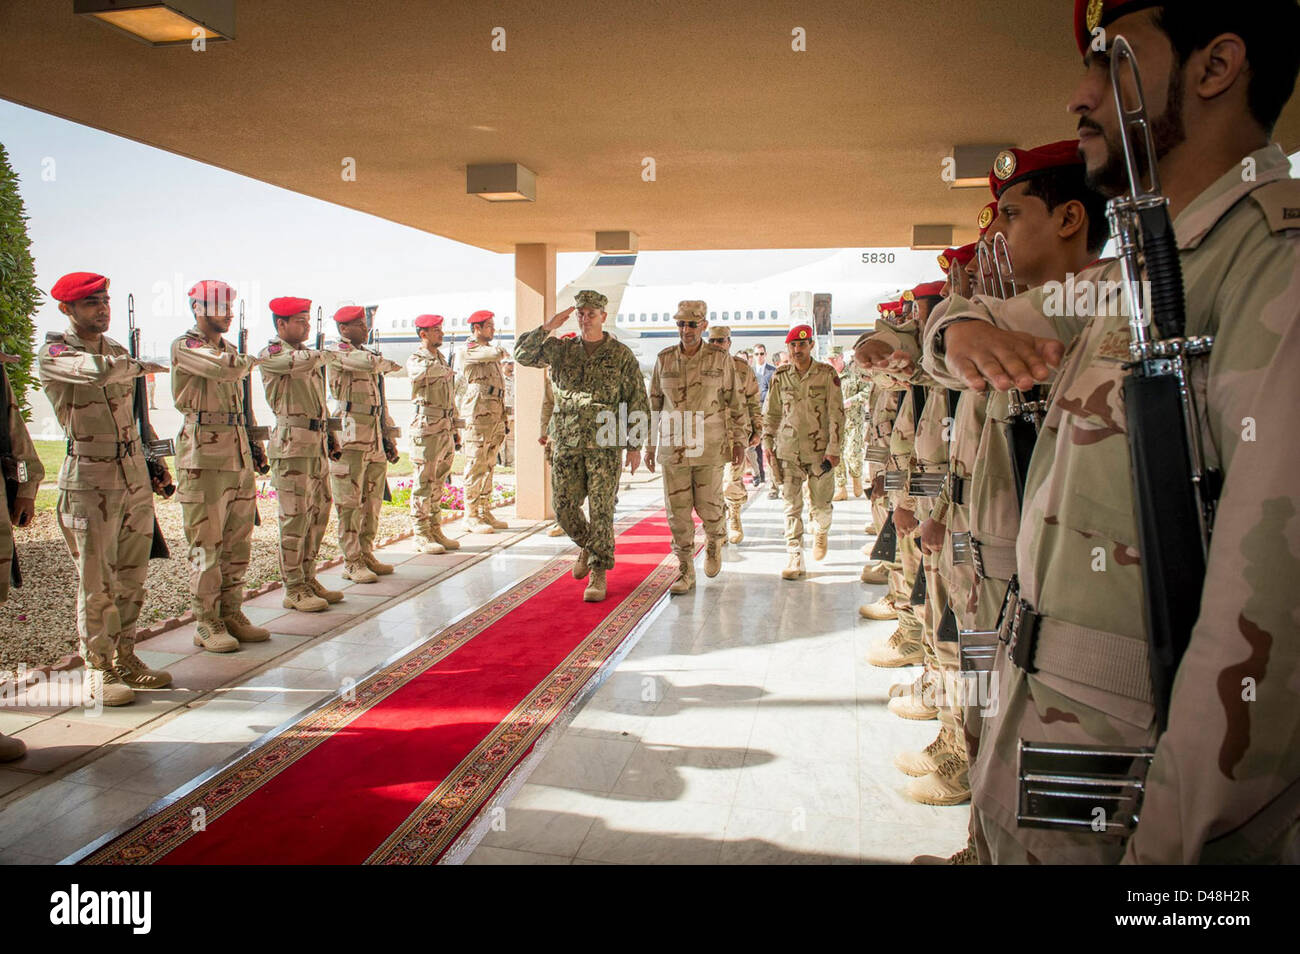 CNO Adm. Greenert is welcomed at King Abdulaziz Naval Base. - Stock Image